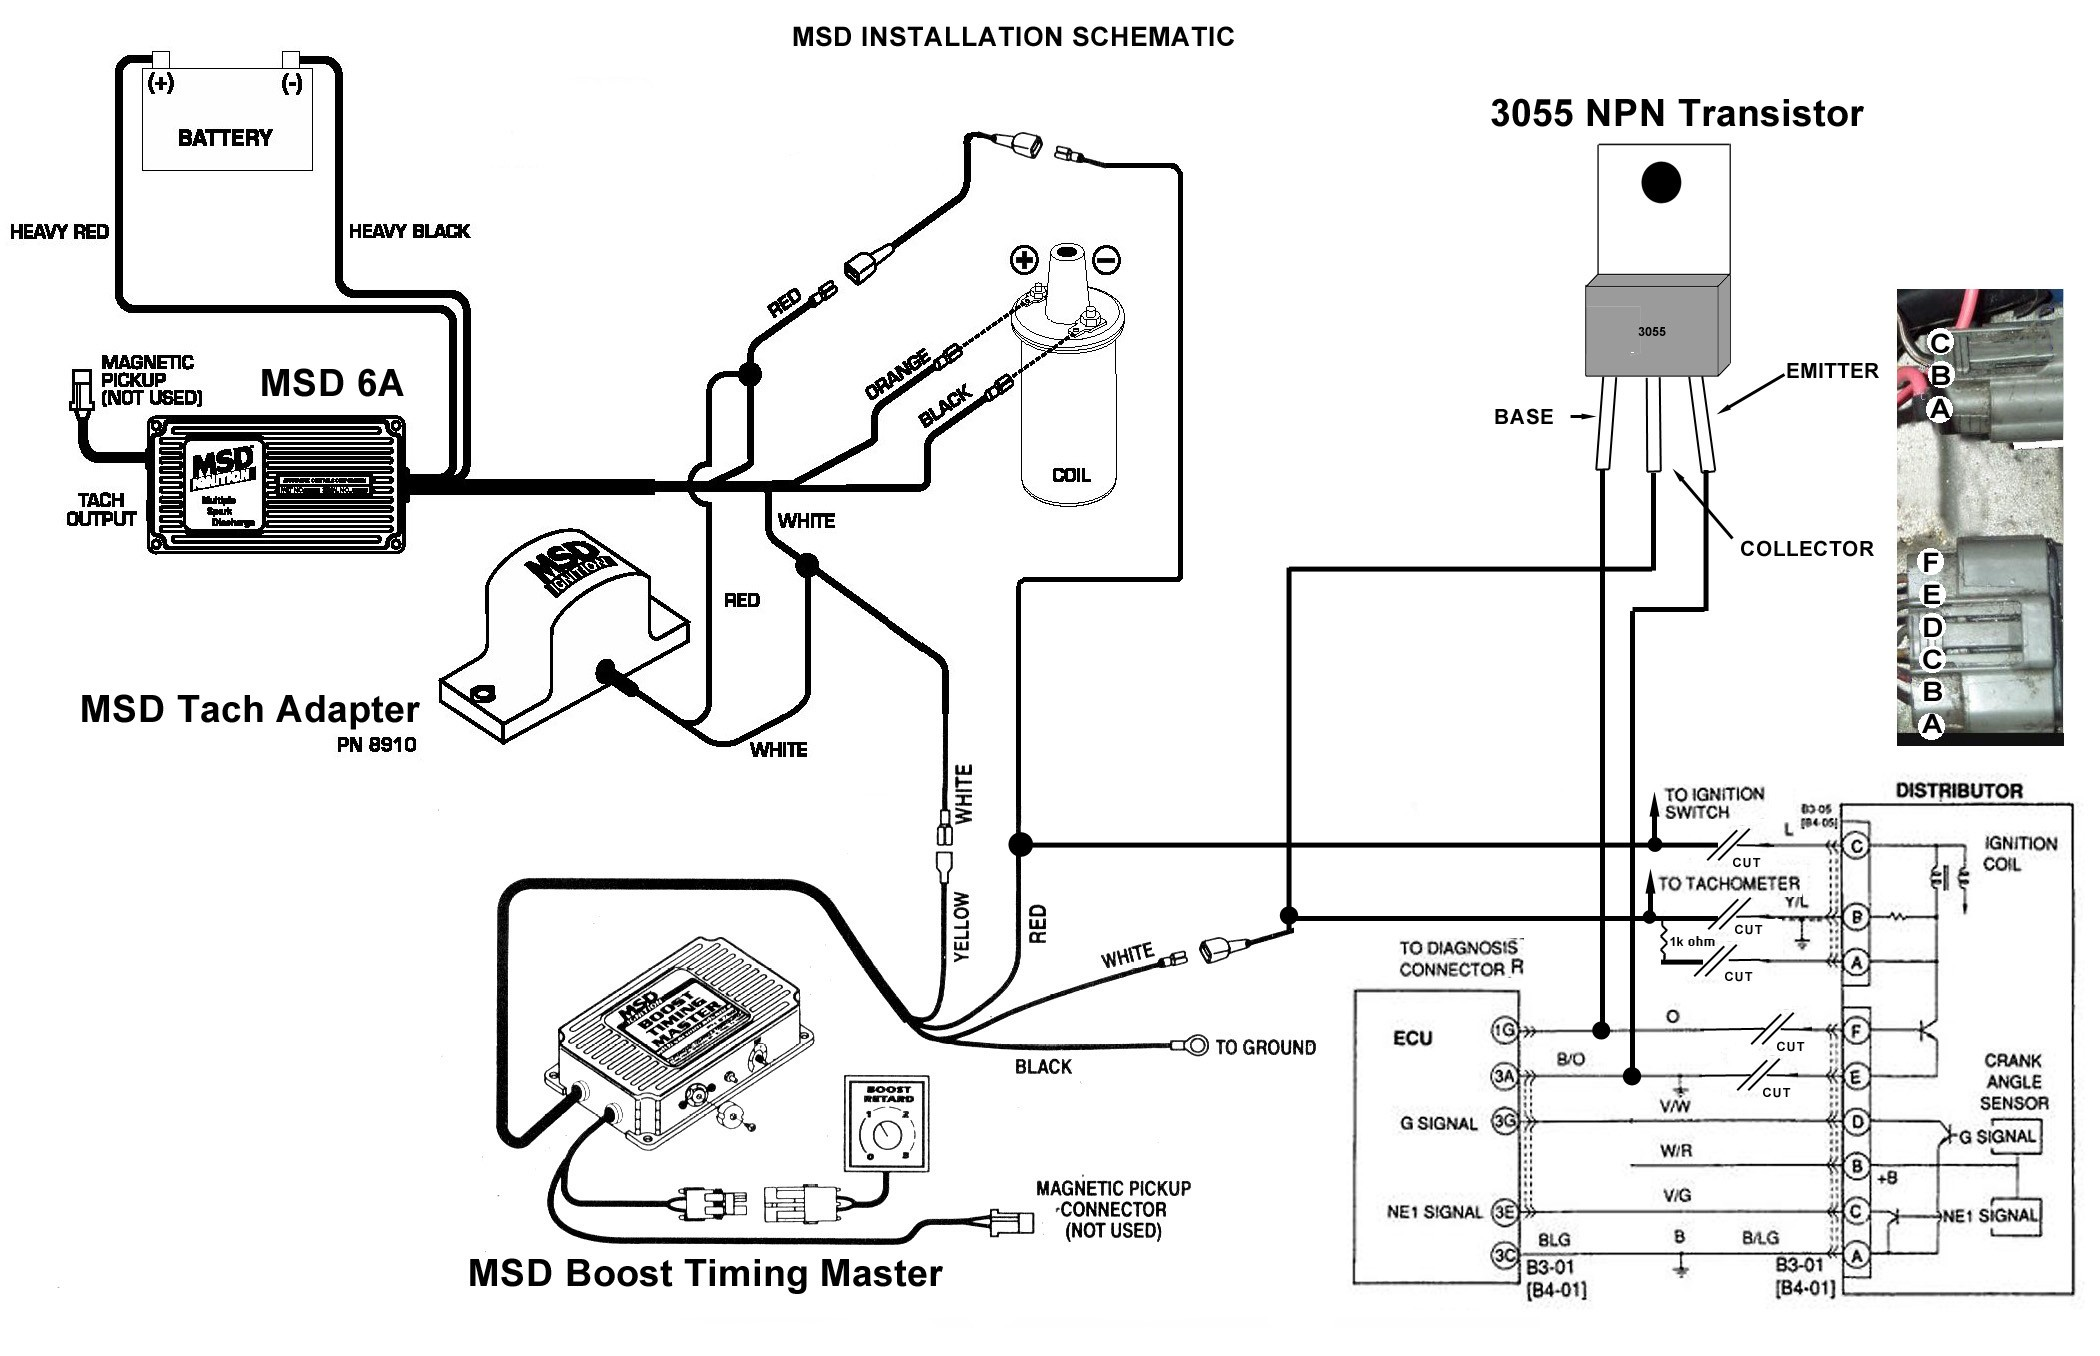 [SCHEMATICS_44OR]  E517F Wiring Diagram For Mazda Bongo | Wiring Resources | Mazda Bongo Electrical Wiring Diagram |  | Wiring Resources